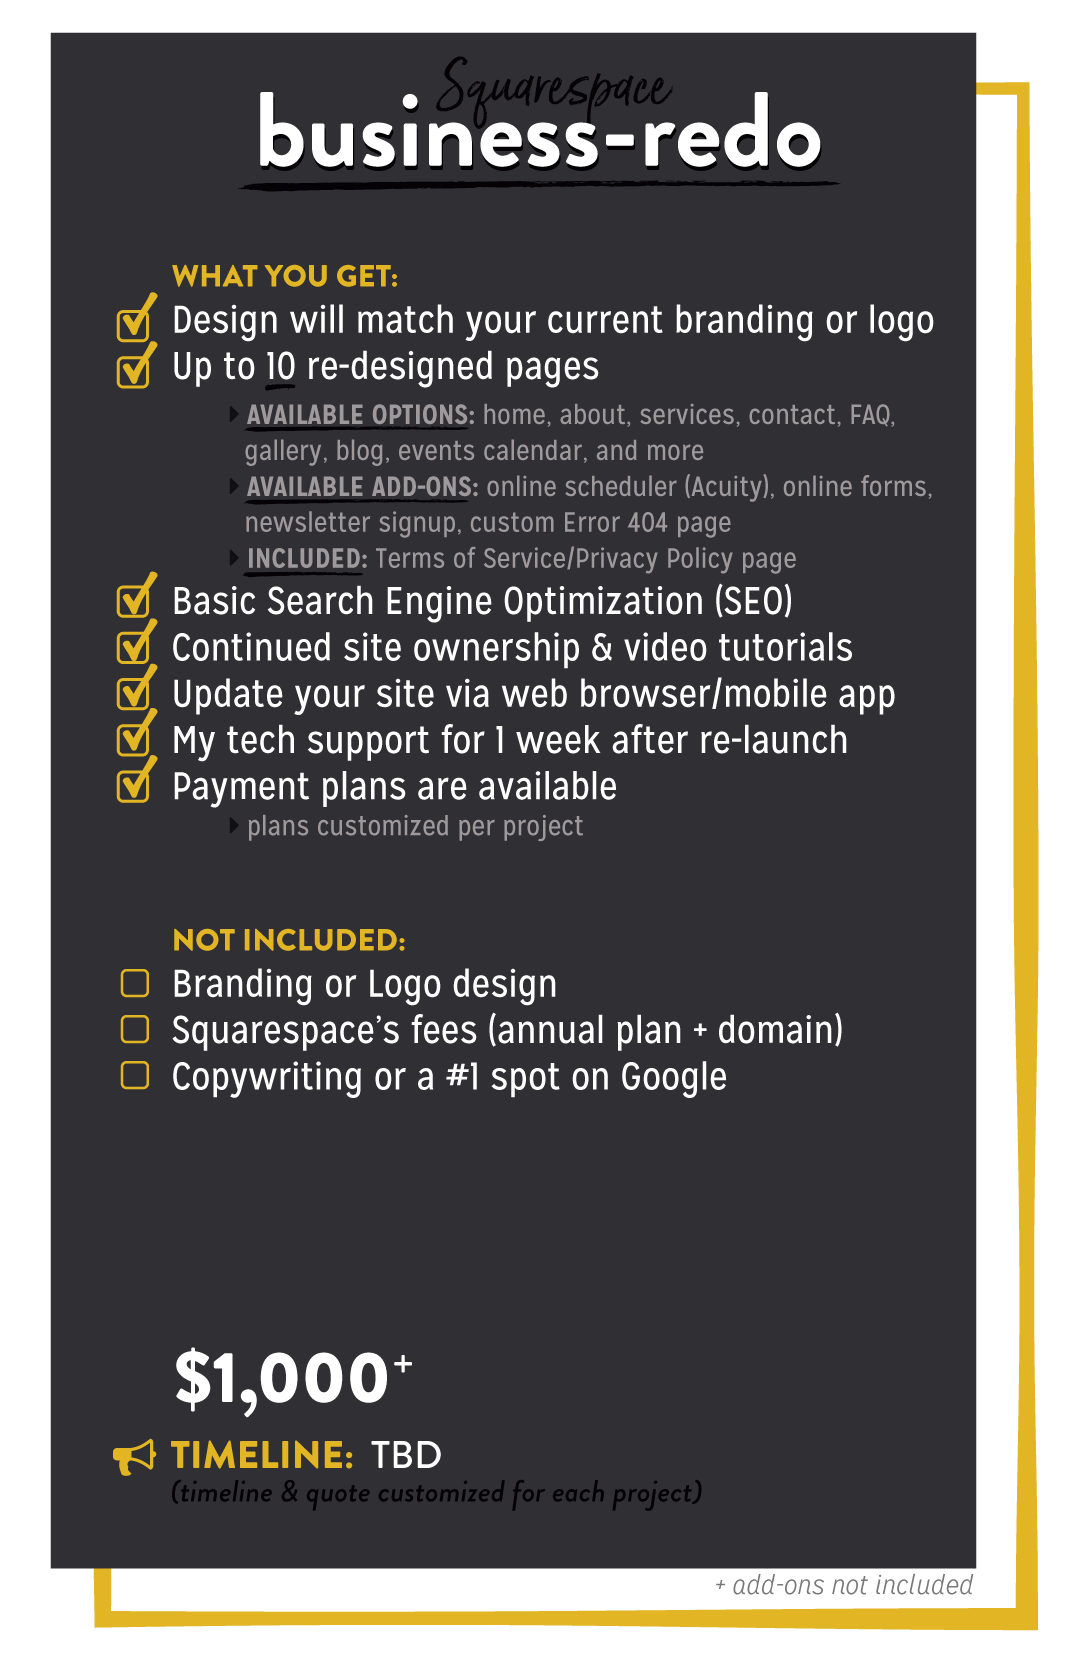 S1862_SquarespaceDesignPackage_Business-Redo.png